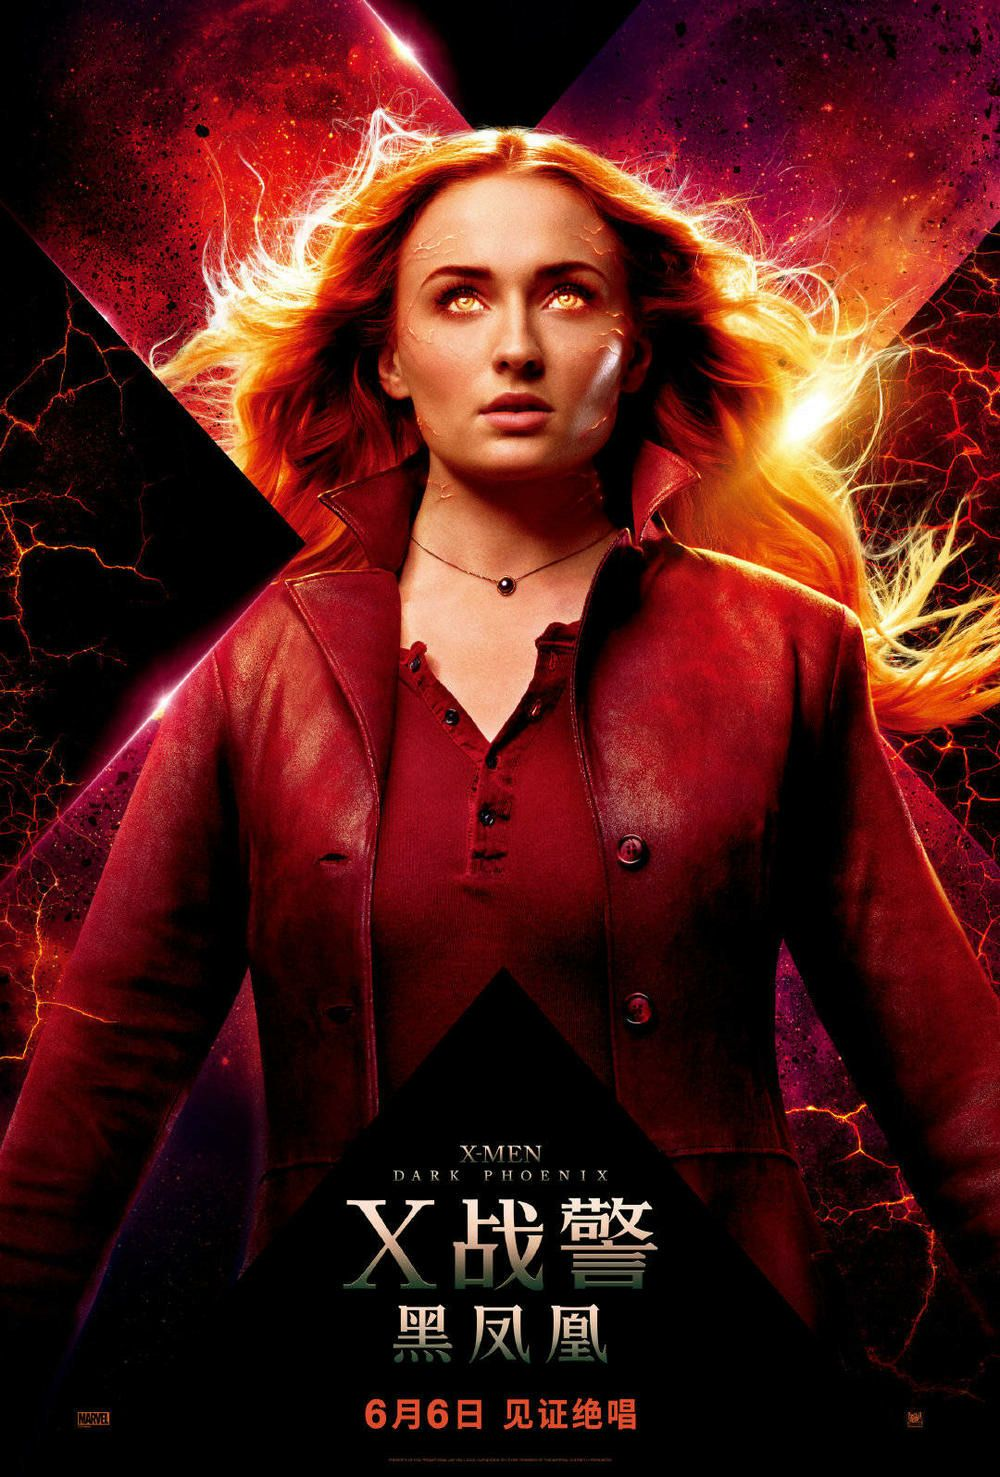 XMen Dark Phoenix (2019) Will turner, Dark phoenix